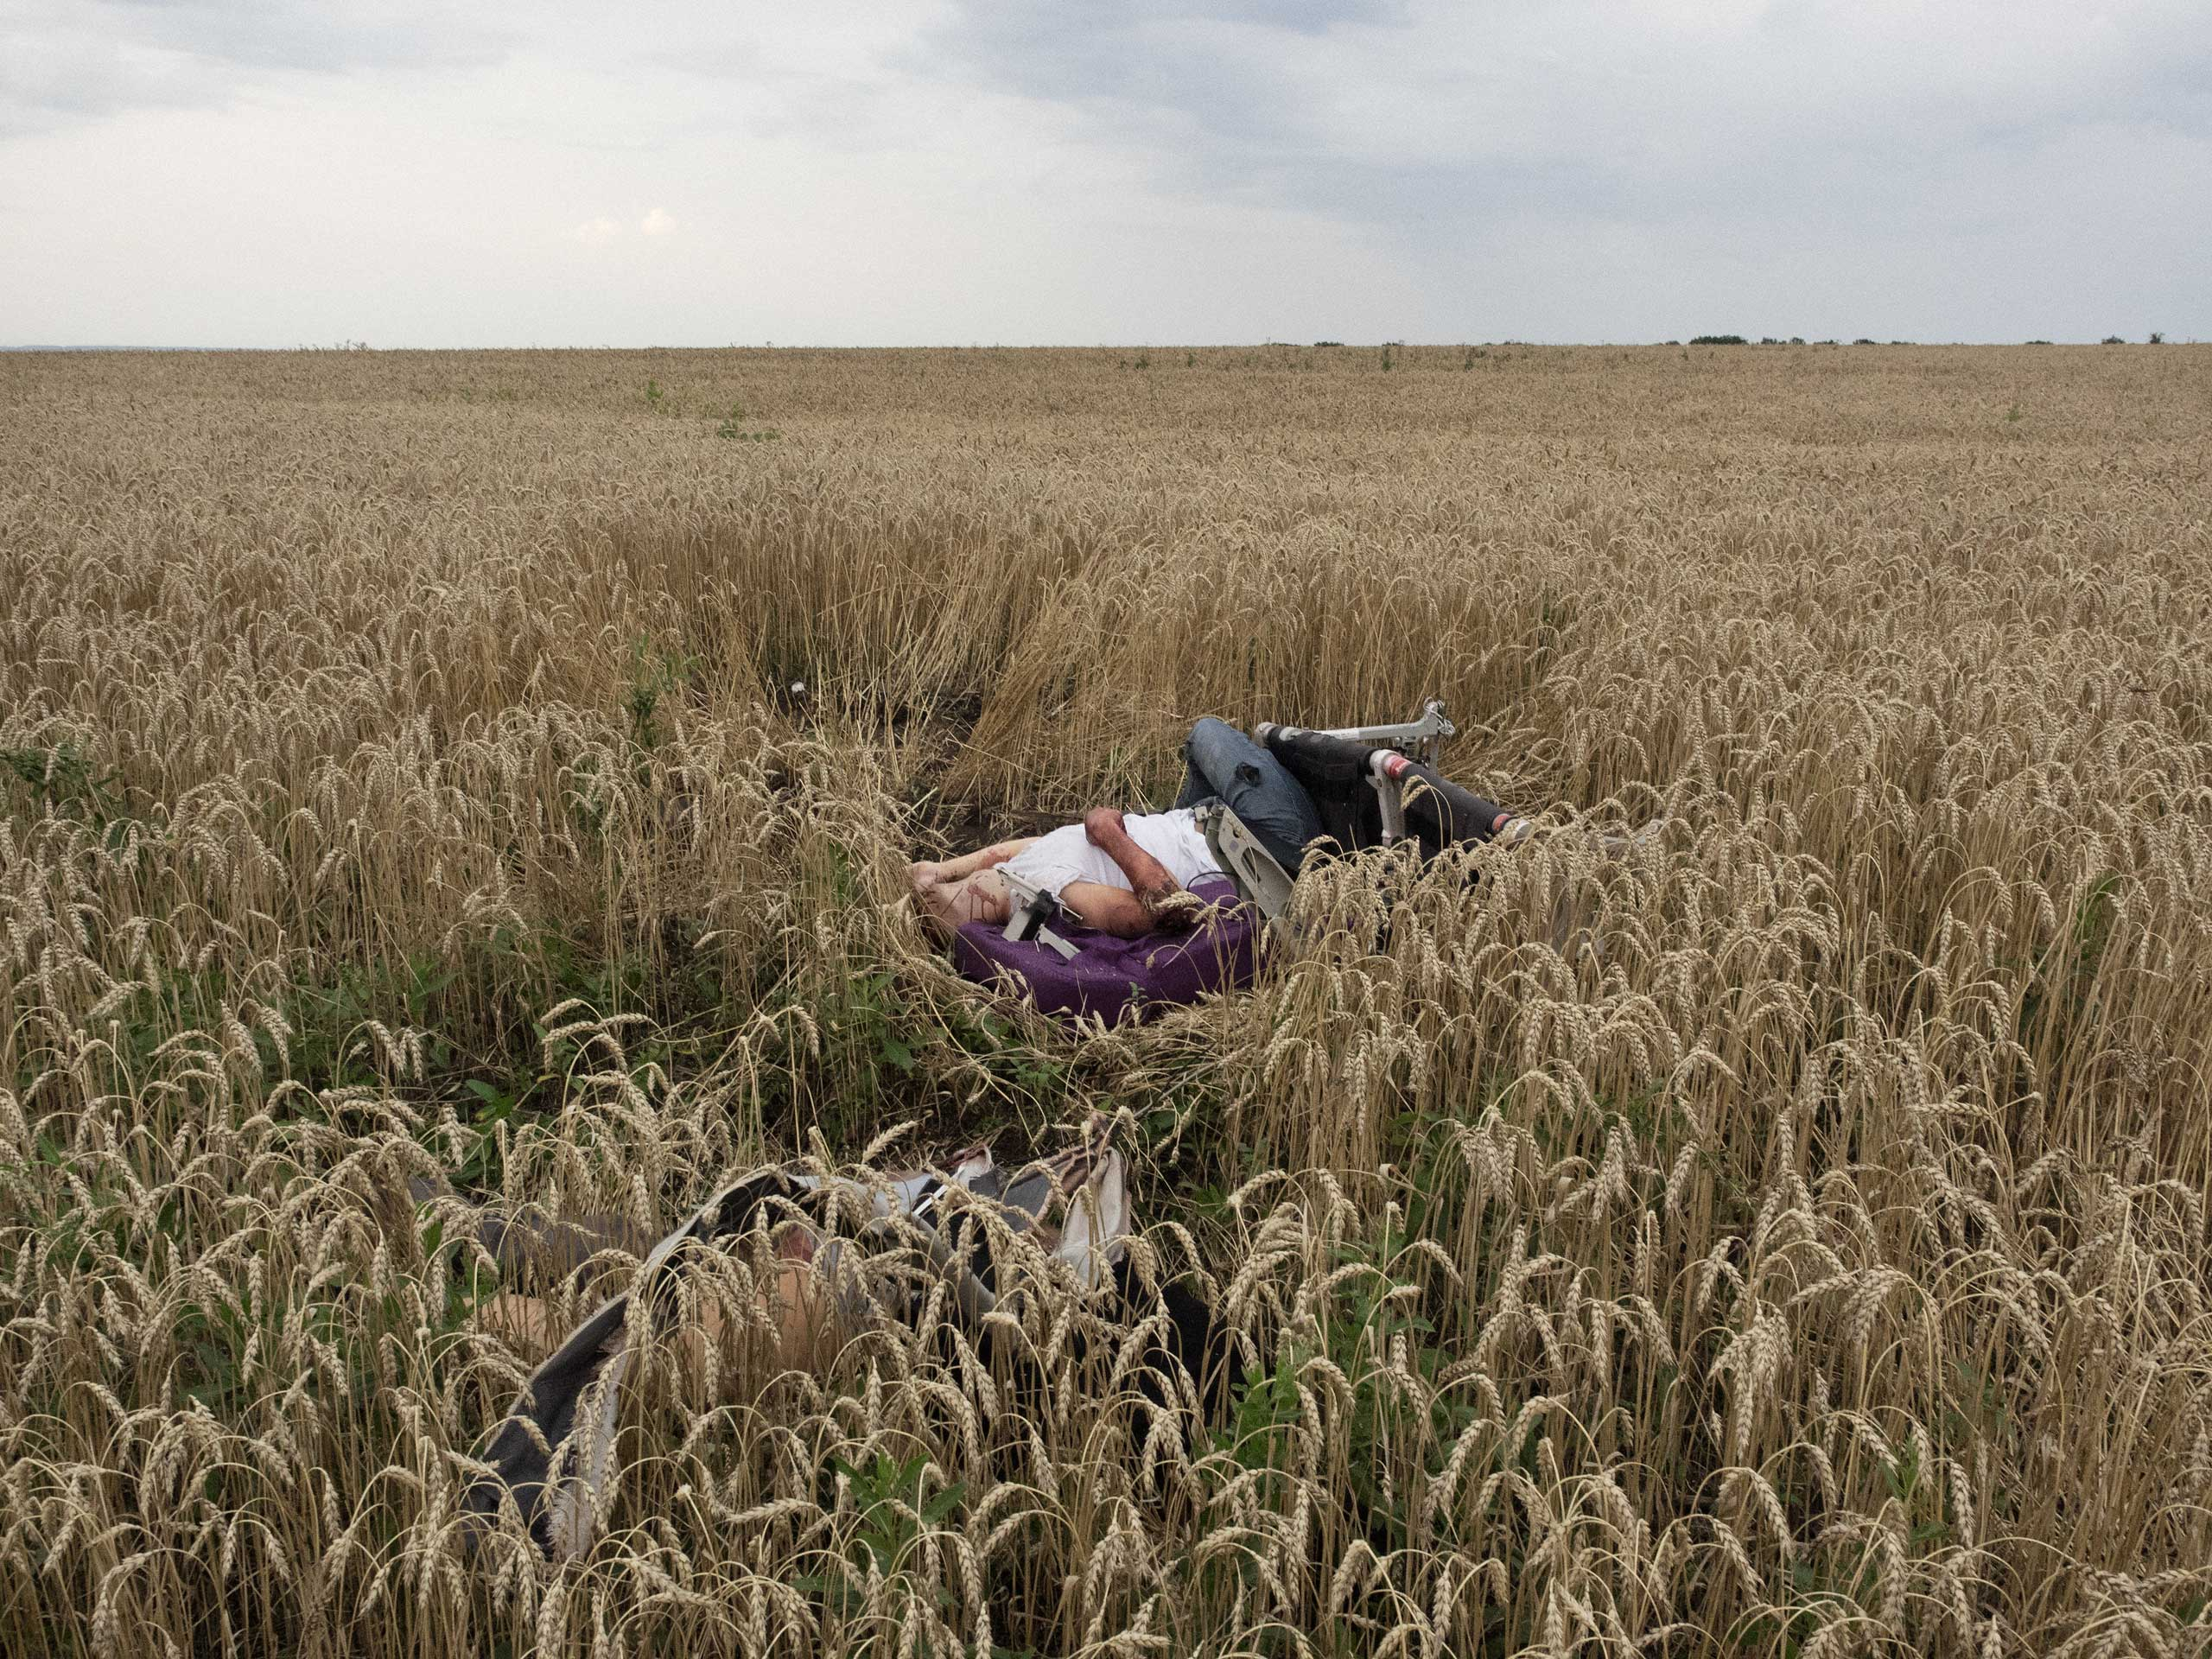 First Place News Single Istanbul Photo Awards                                Remains of the plane and a body of a  passenger at the site of the crash of Malaysia Airlines MH-17 in Torez, Ukraine July 17, 2014.